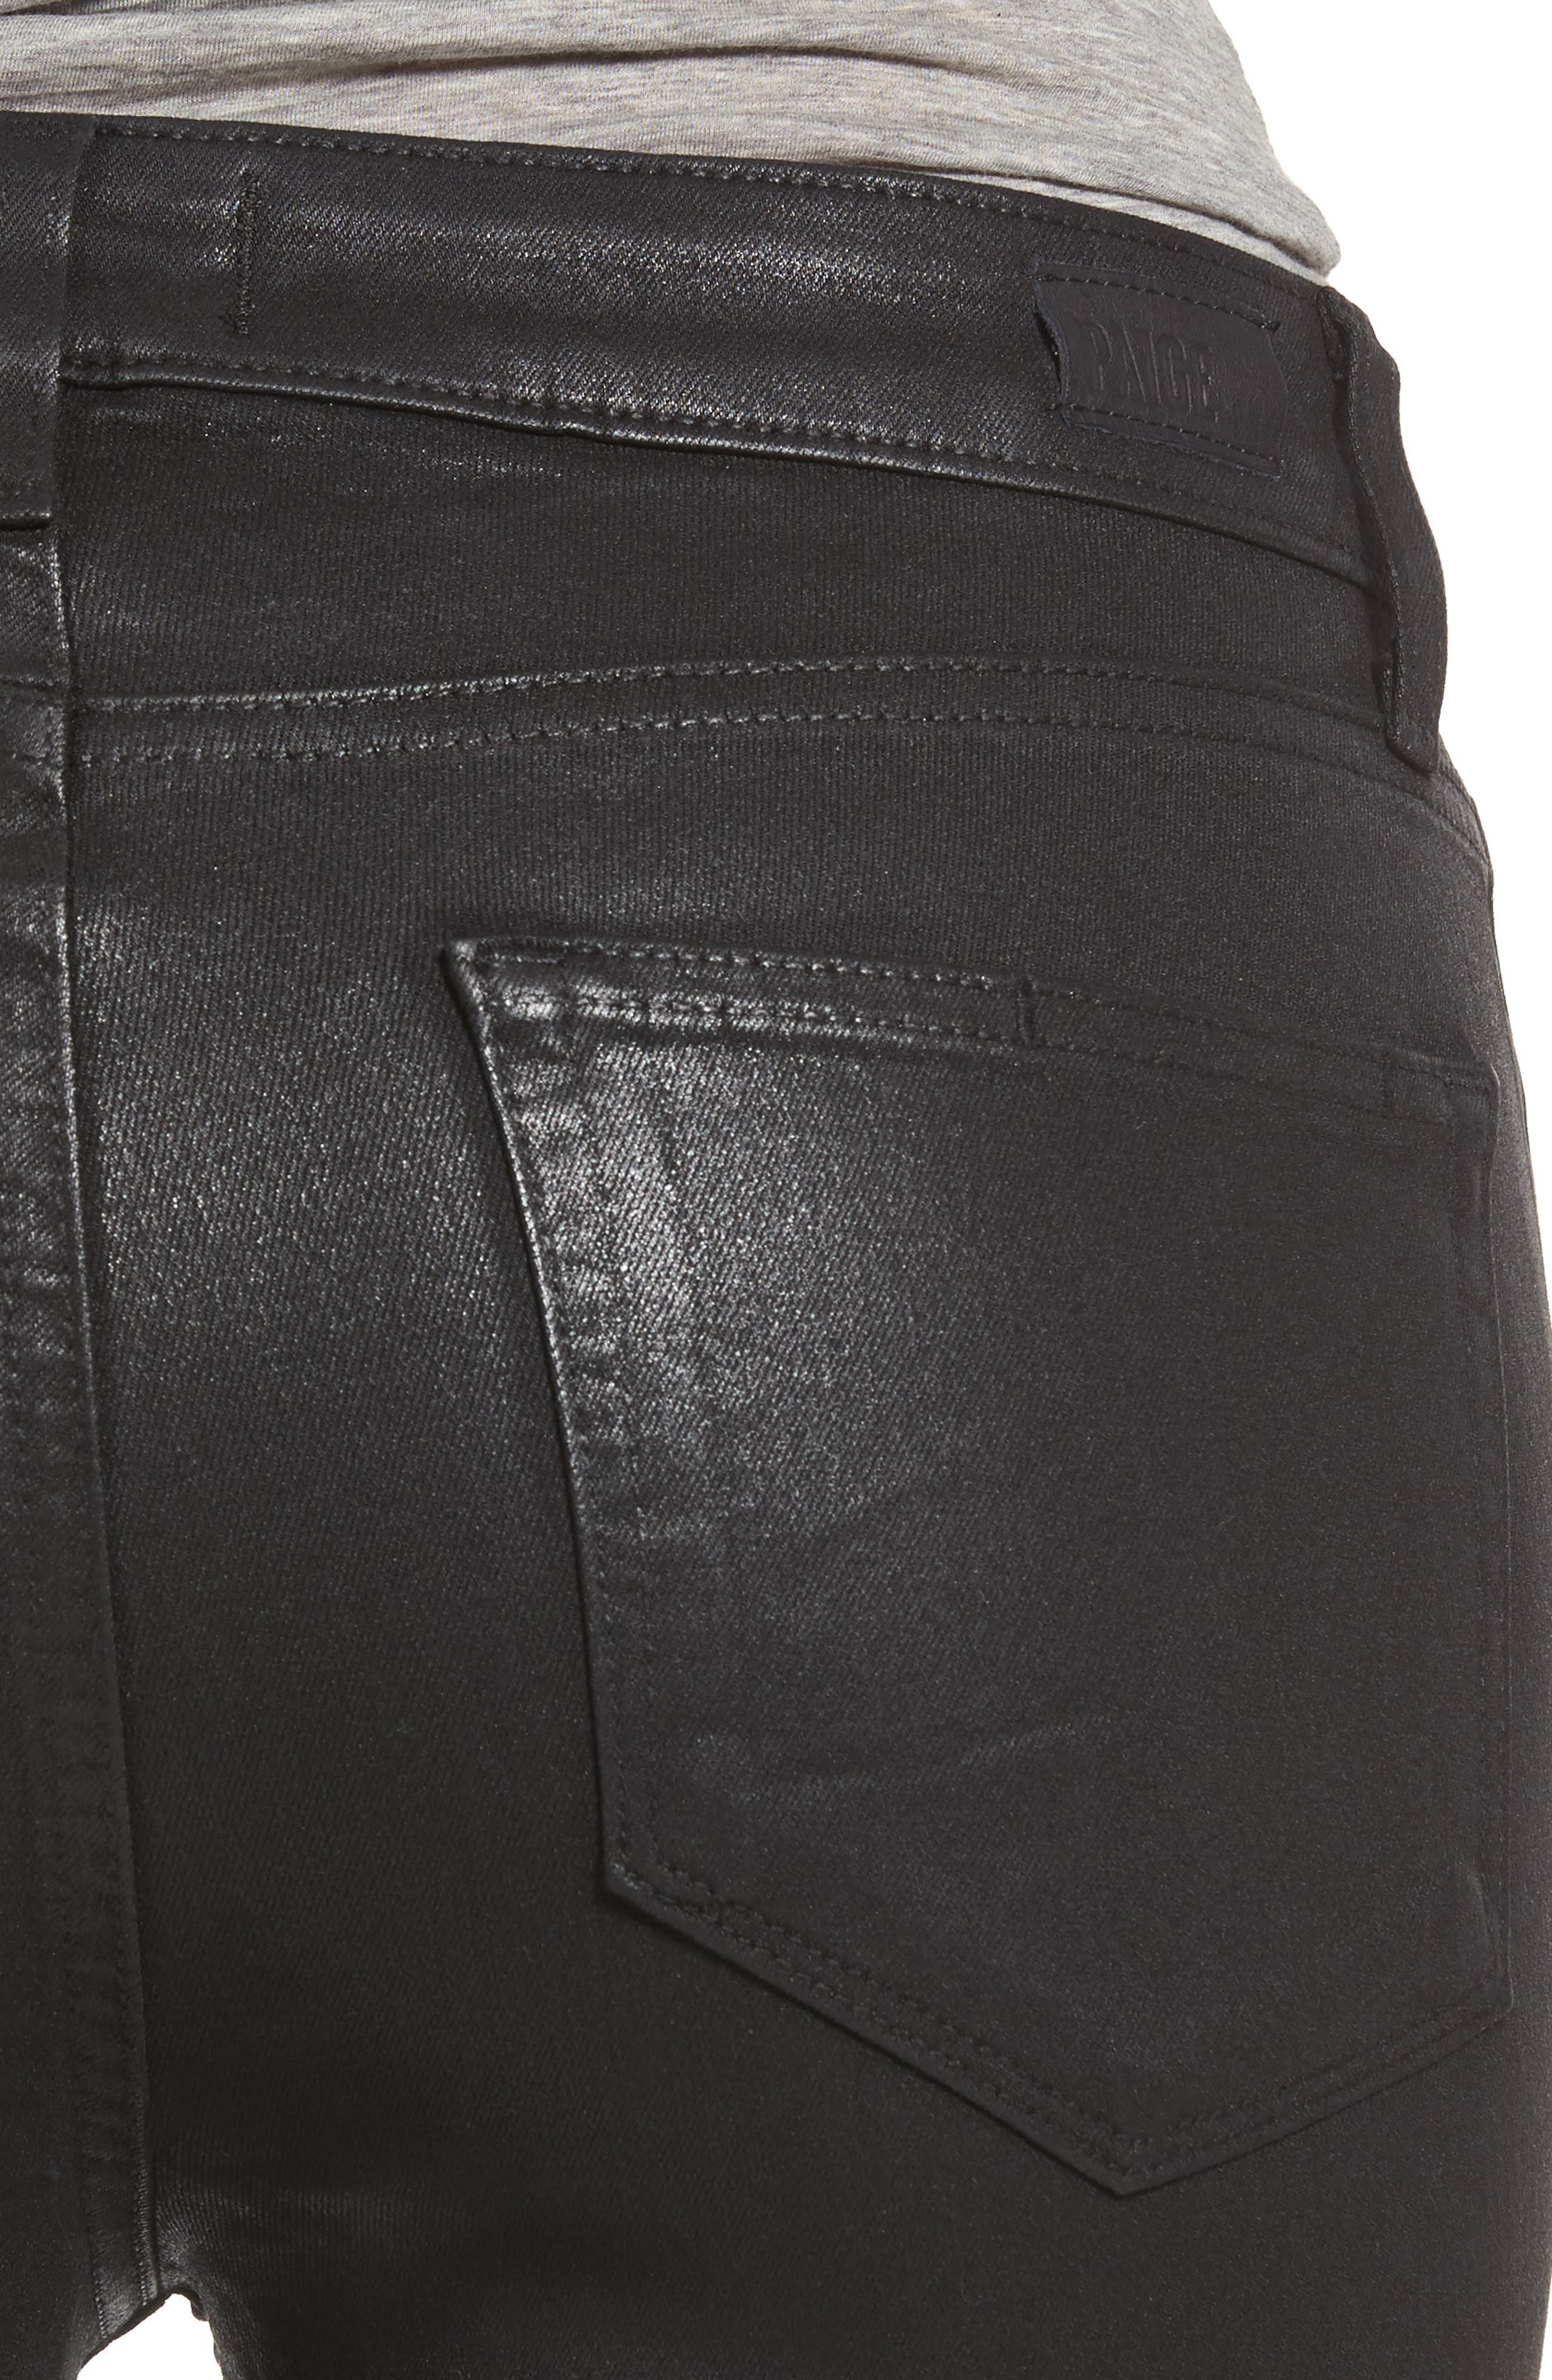 PAIGE,                             Transcend - Hoxton High Waist Ankle Skinny Jeans,                             Alternate thumbnail 4, color,                             LUXE BLACK COATED